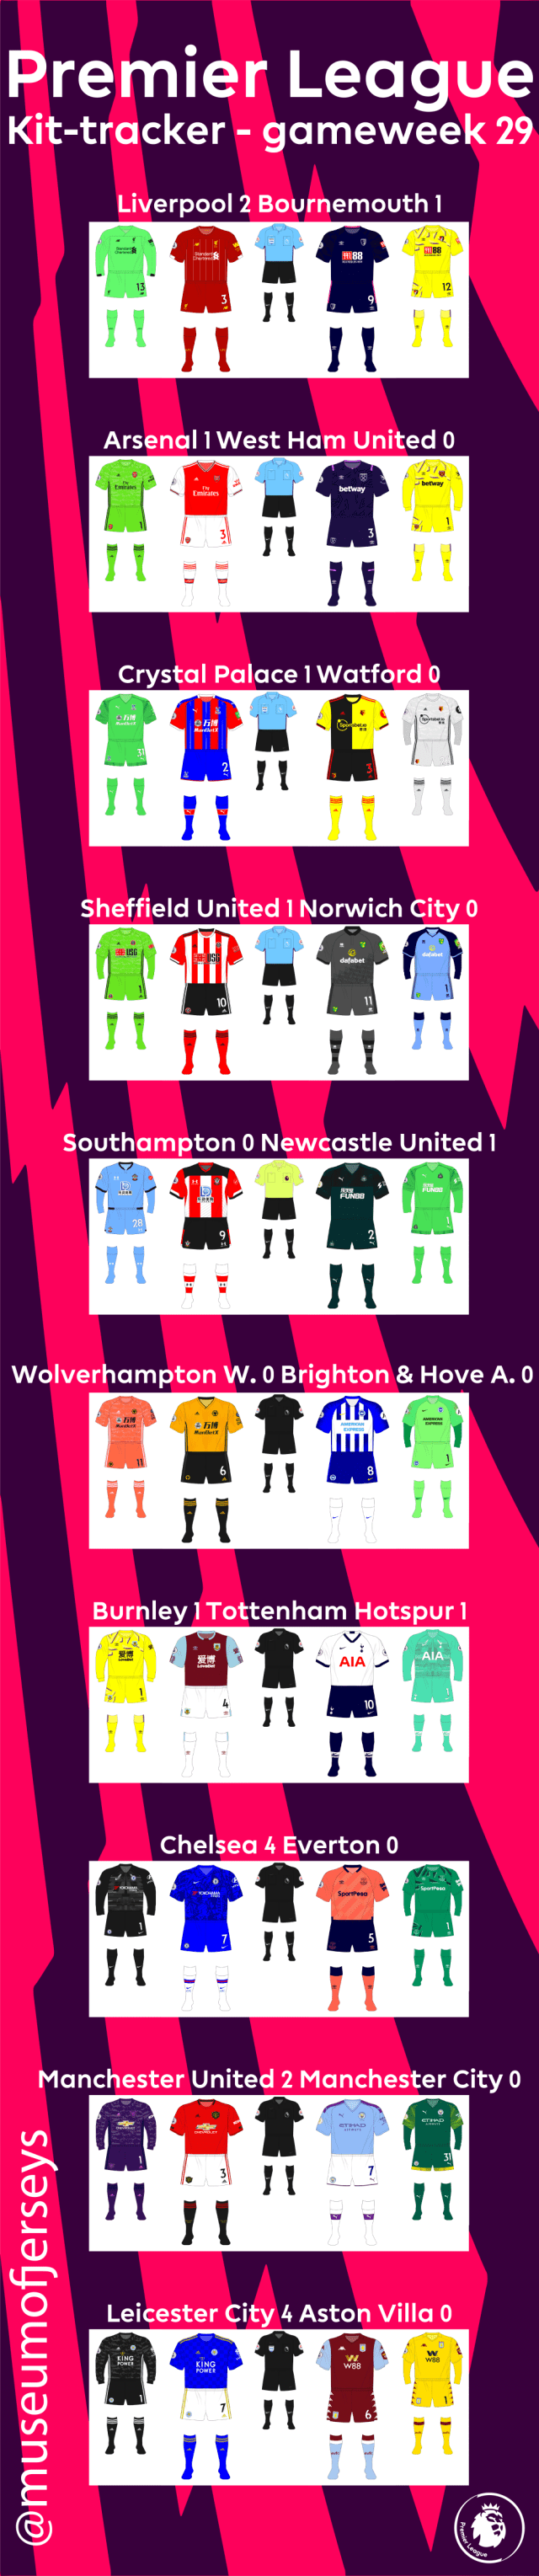 2019-2020-Premier-League-Kit-Tracker-Gameweek-29-01